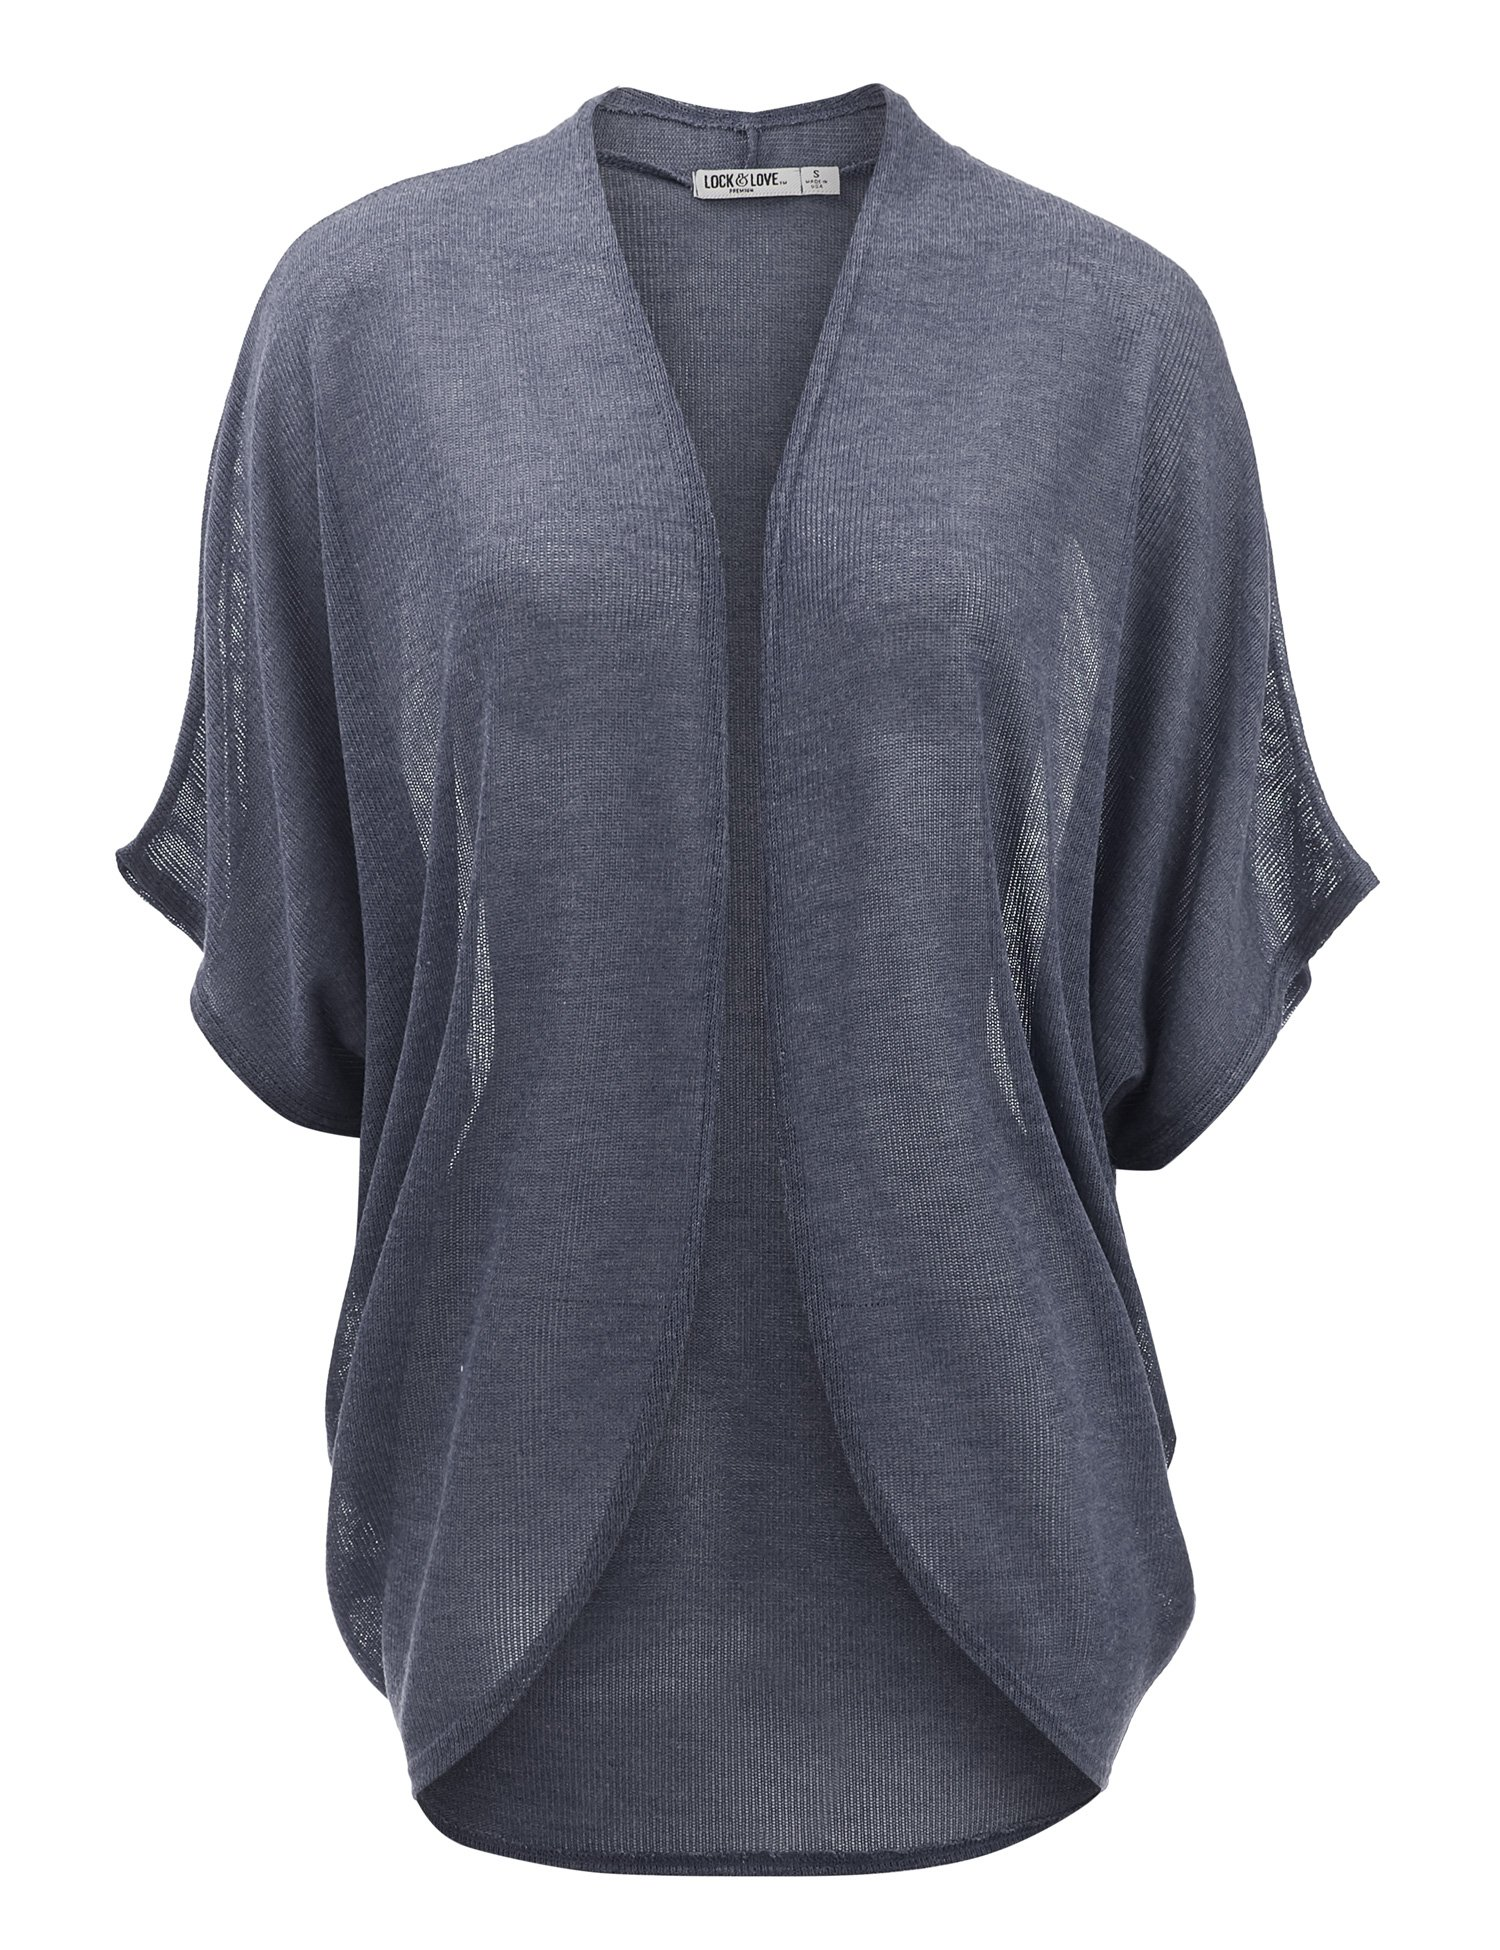 Lock and Love WSK1528 Womens Short Sleeve Open-Front Batwing Cardigan - Made in USA XL Navy